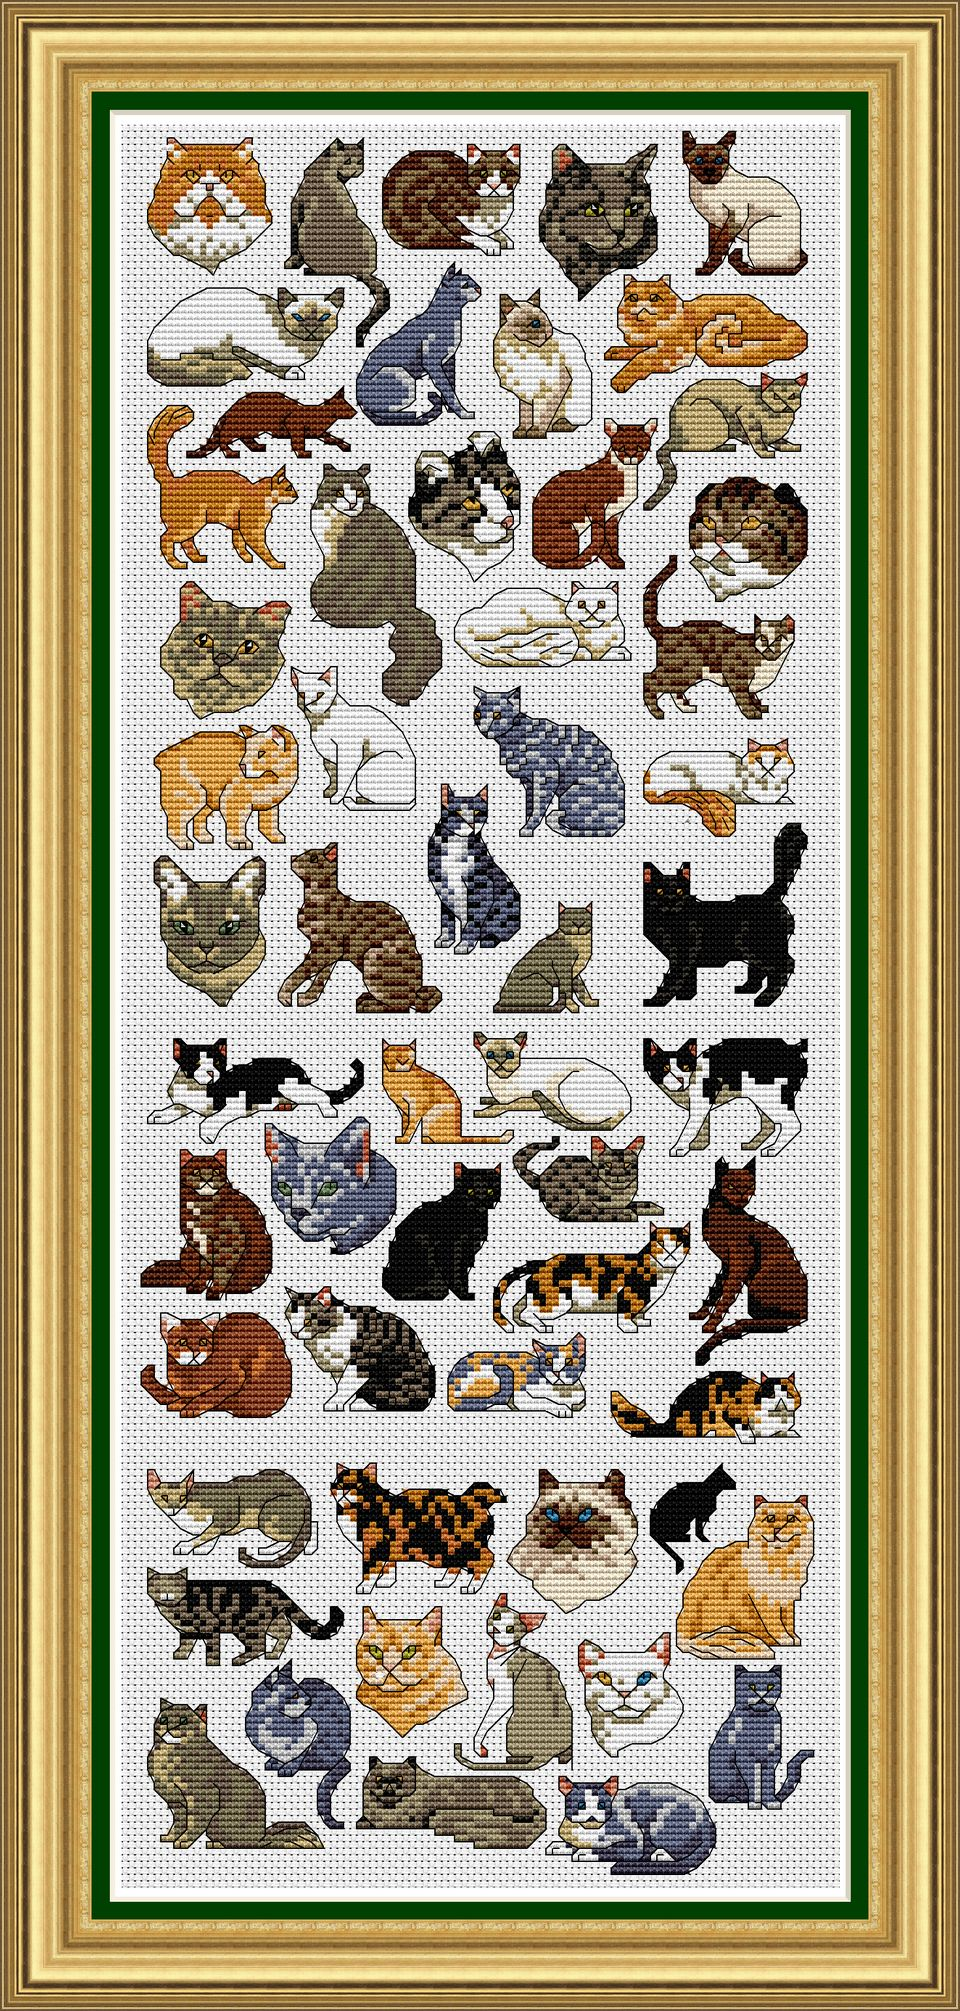 KTF019 Cross Stitch Kit Cartoon Cat Art Homfun Maison Cross Stich Painting Joy Sunday Christmas Decorations For Home Homefun image